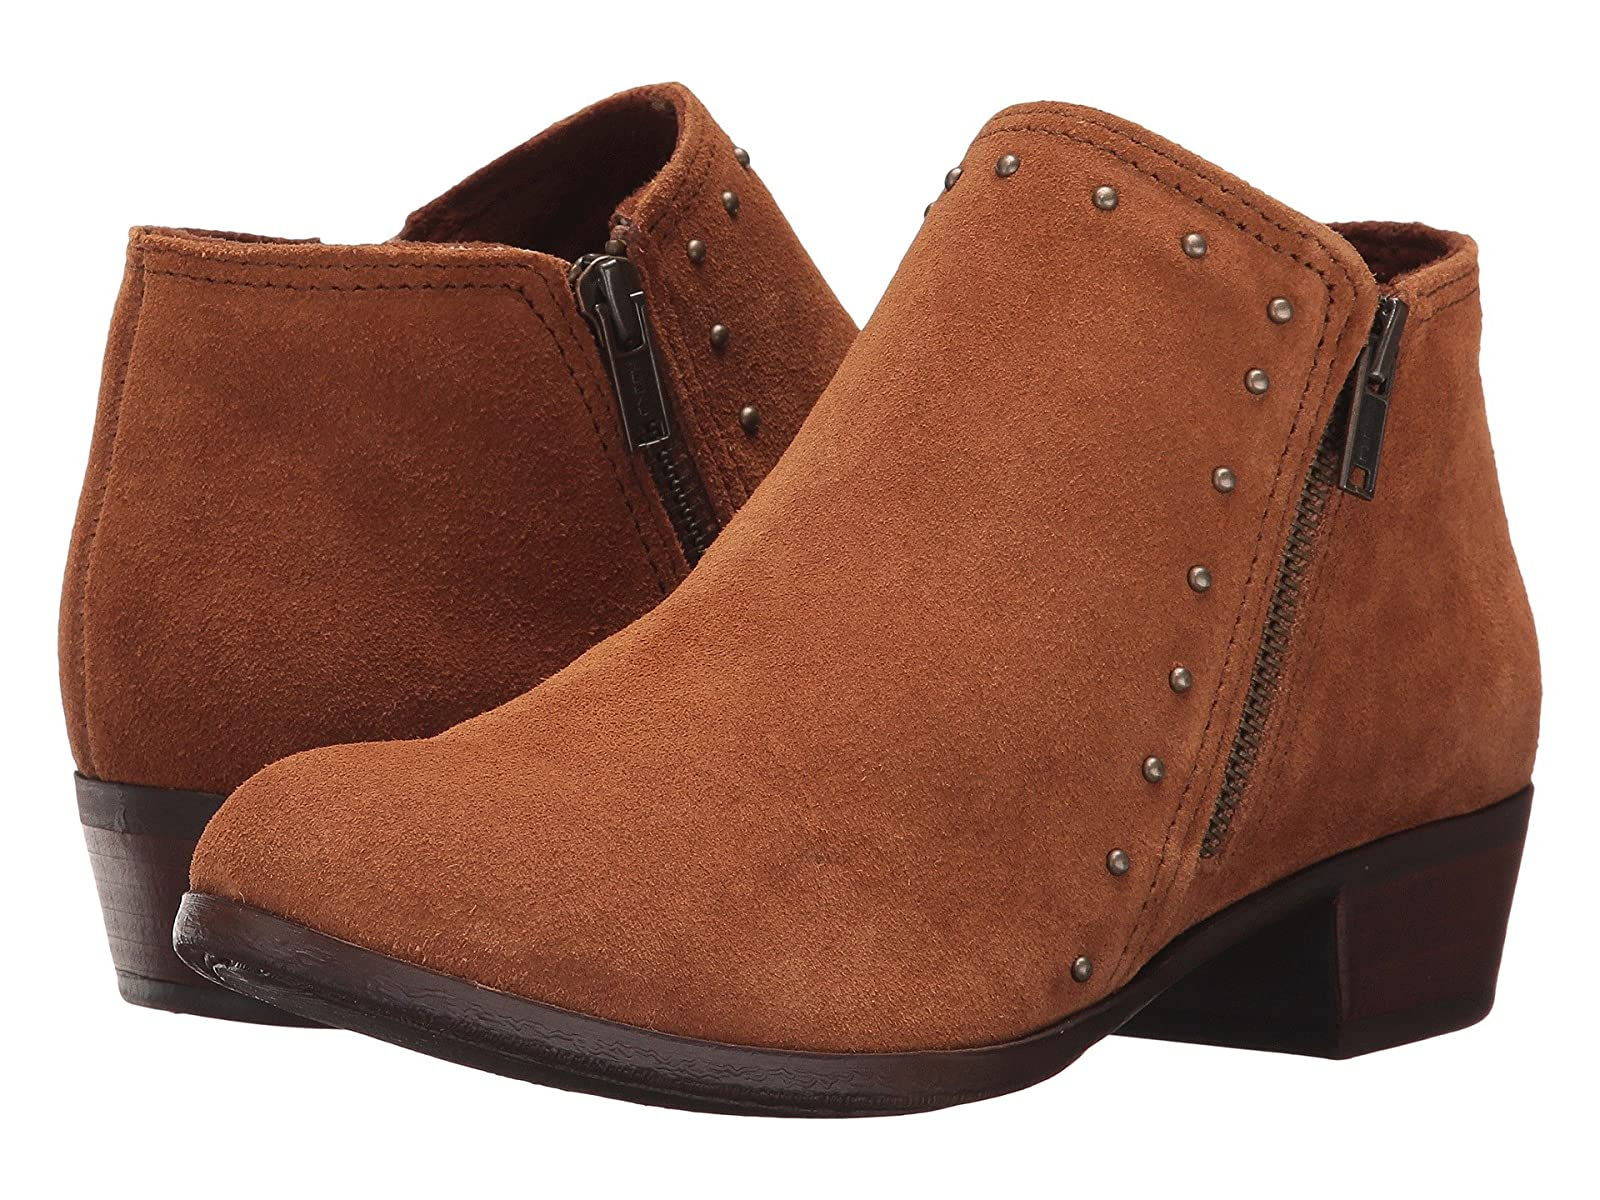 Minnetonka Brie BootEconomical and quality shoes